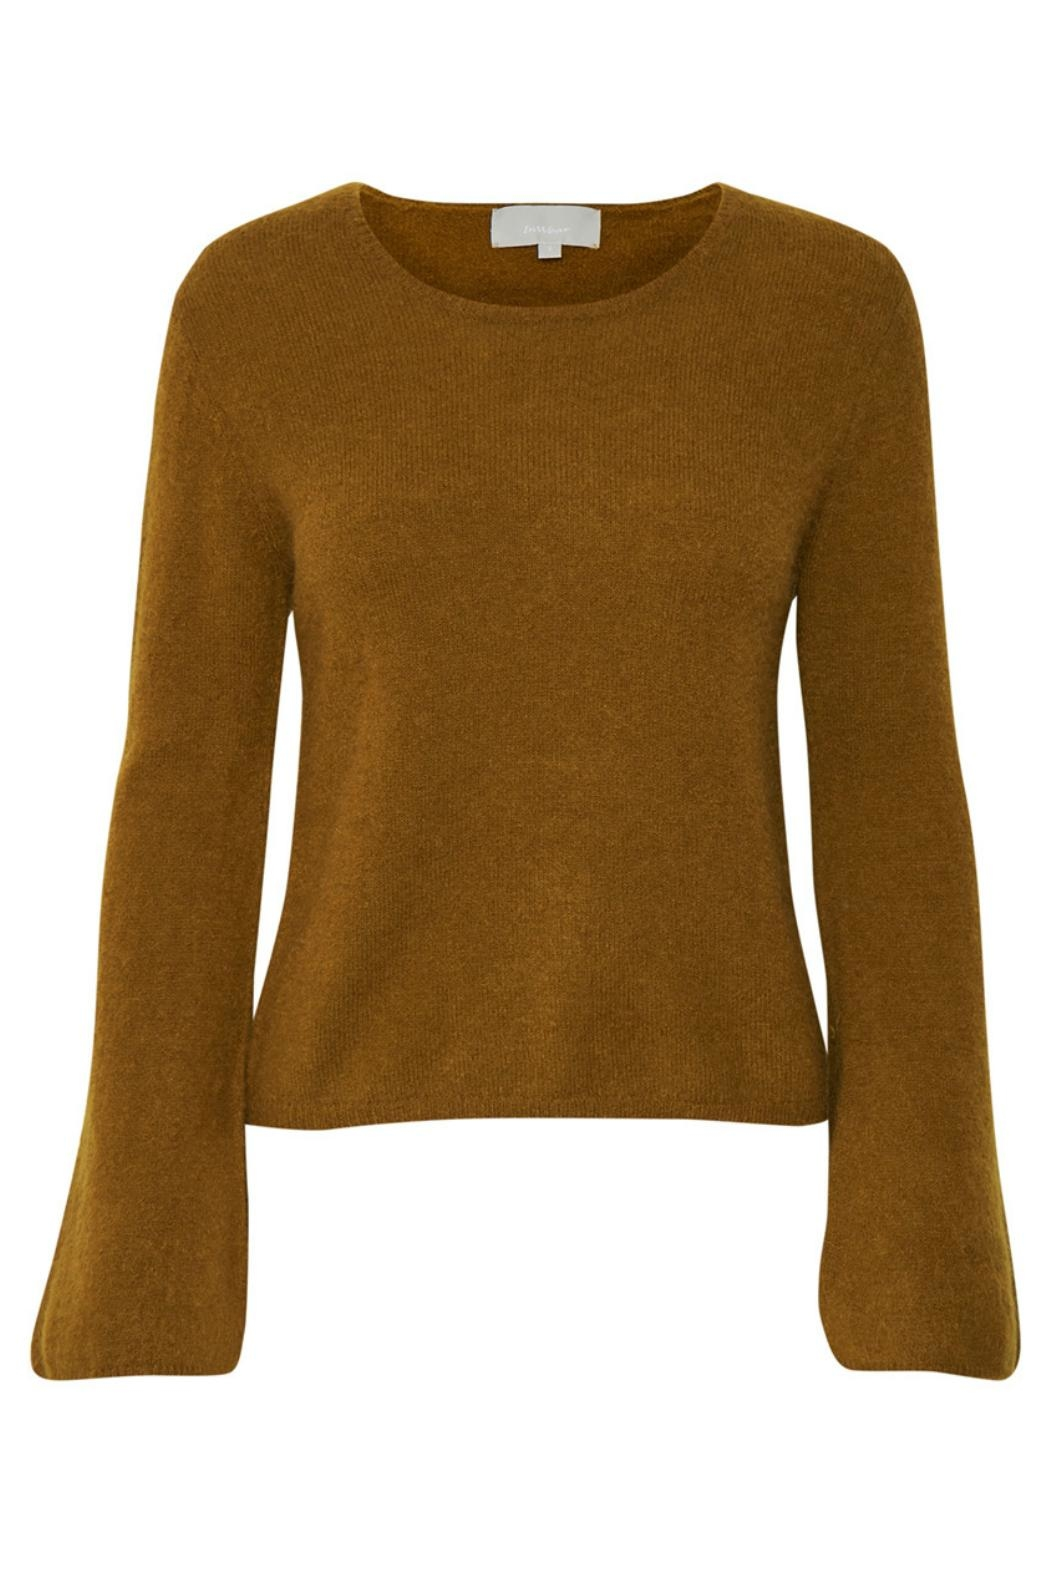 Inwear Flare Sleeve Sweater - Front Cropped Image